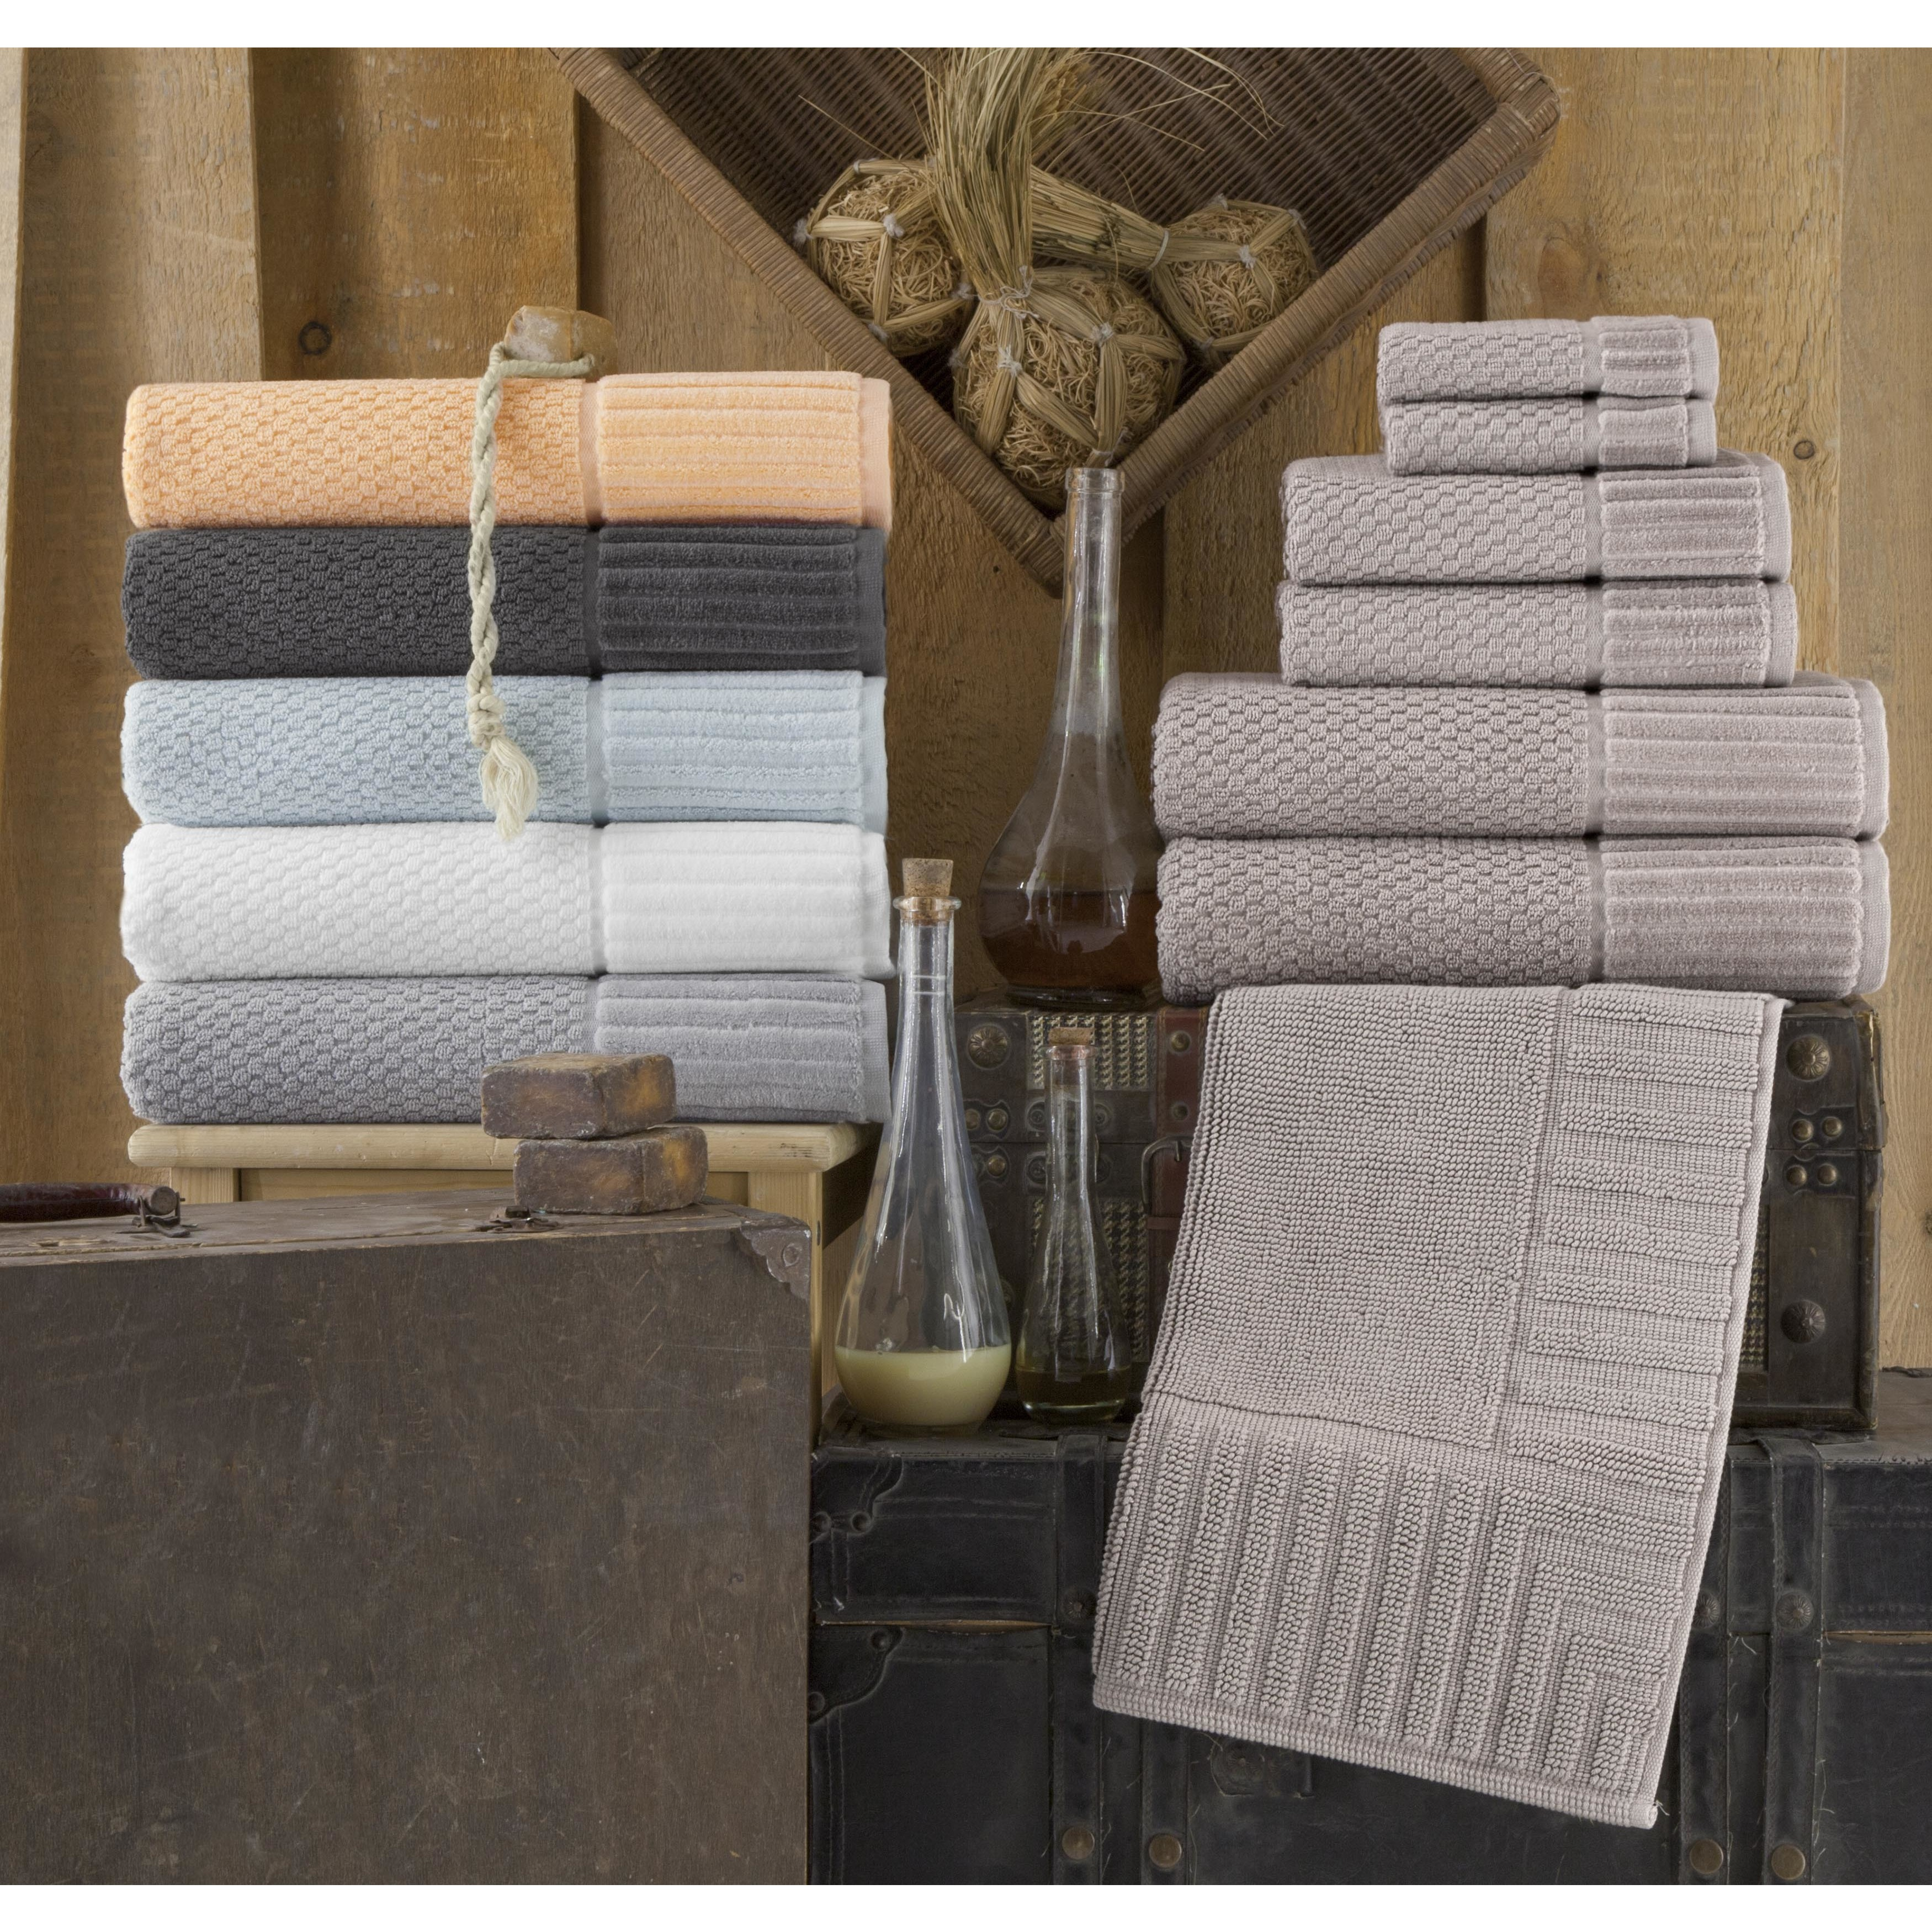 thumbnail 12 - The-Gray-Barn-Scharbauer-Bath-Towels-Set-of-2